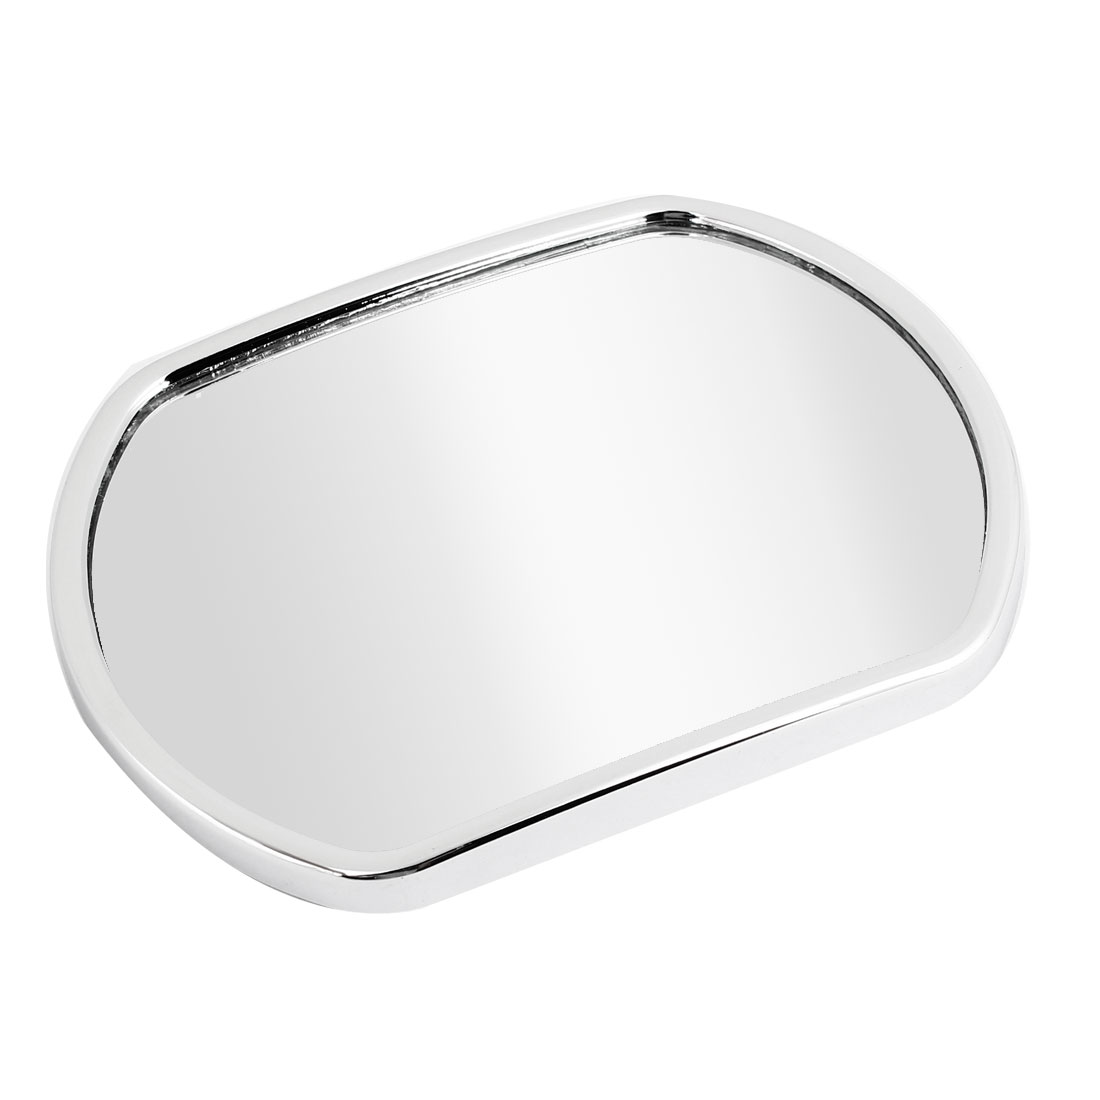 13.5cm x 10.5cm Silver Tone Stick-on Convex Rearview Blind Spot Mirror for Car